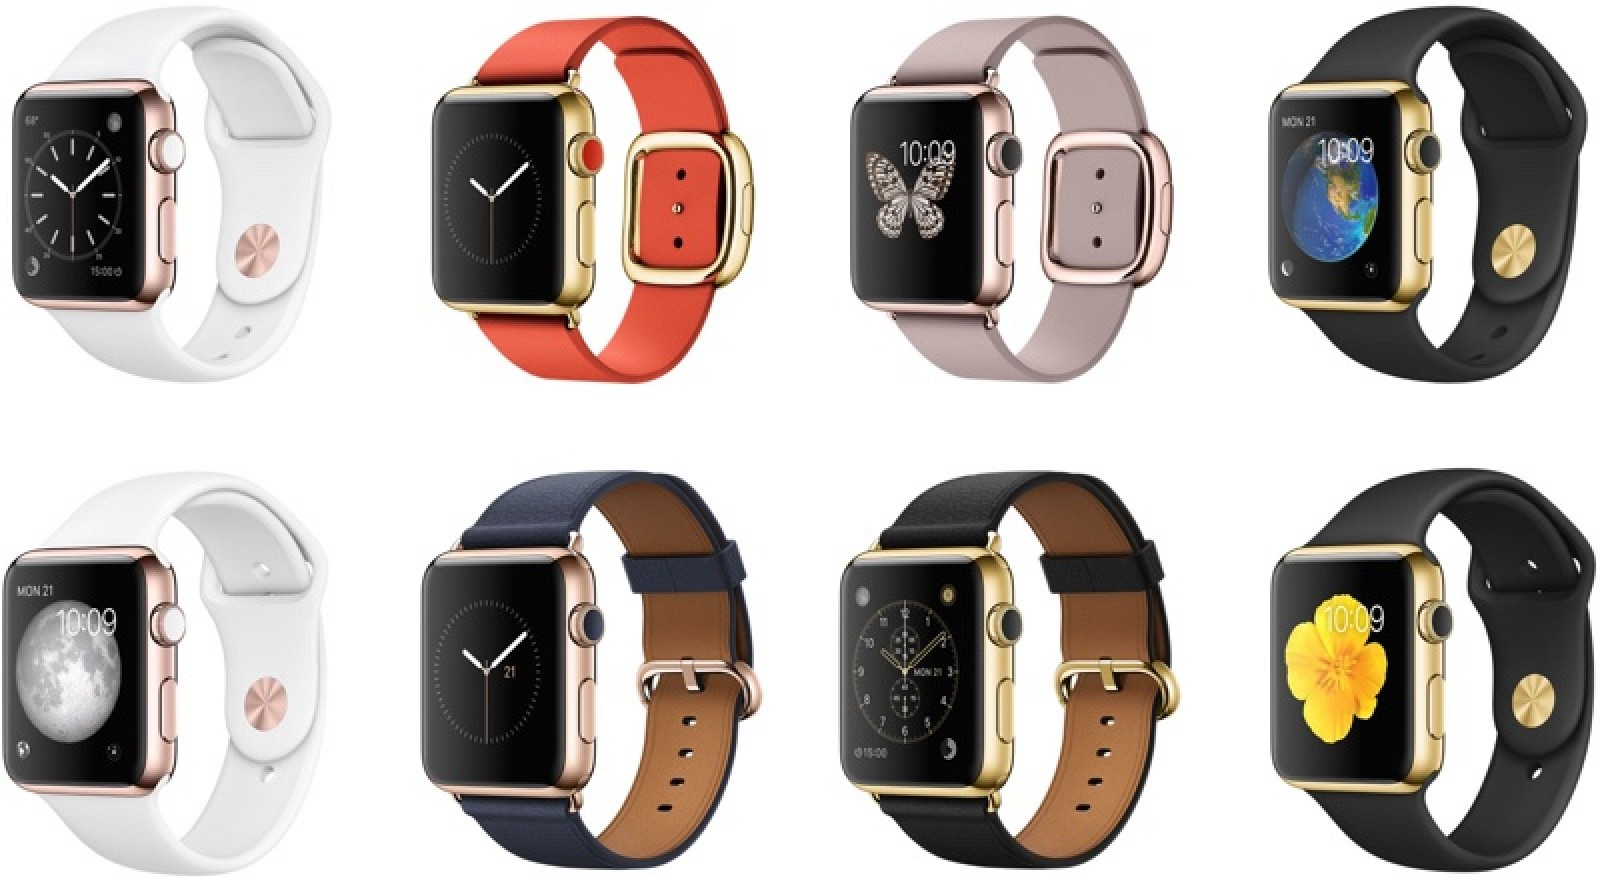 Black Friday Car Deals >> Apple Discontinues Gold Apple Watch Edition Models - Mac ...